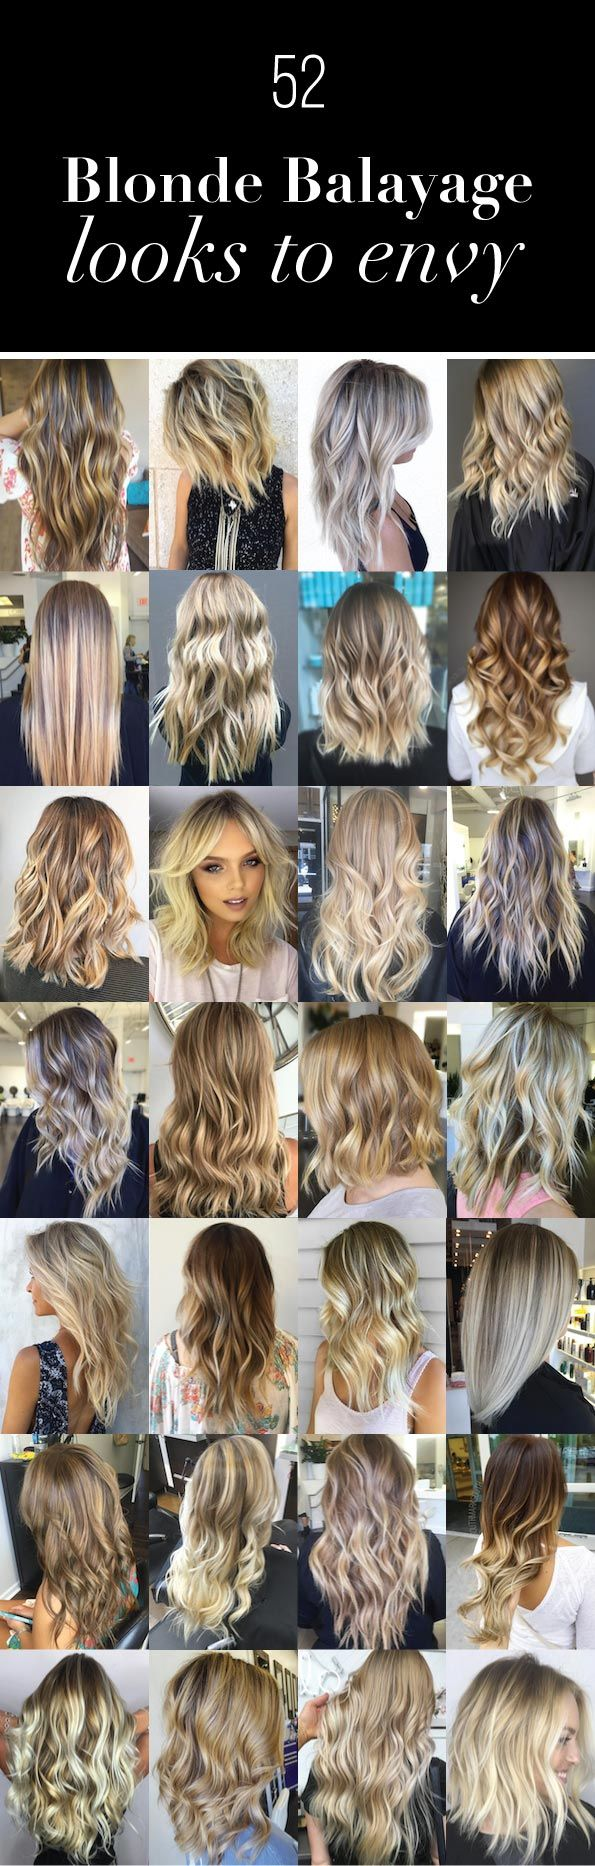 52 Blonde Balayage Looks to Envy | STYLE SKINNER